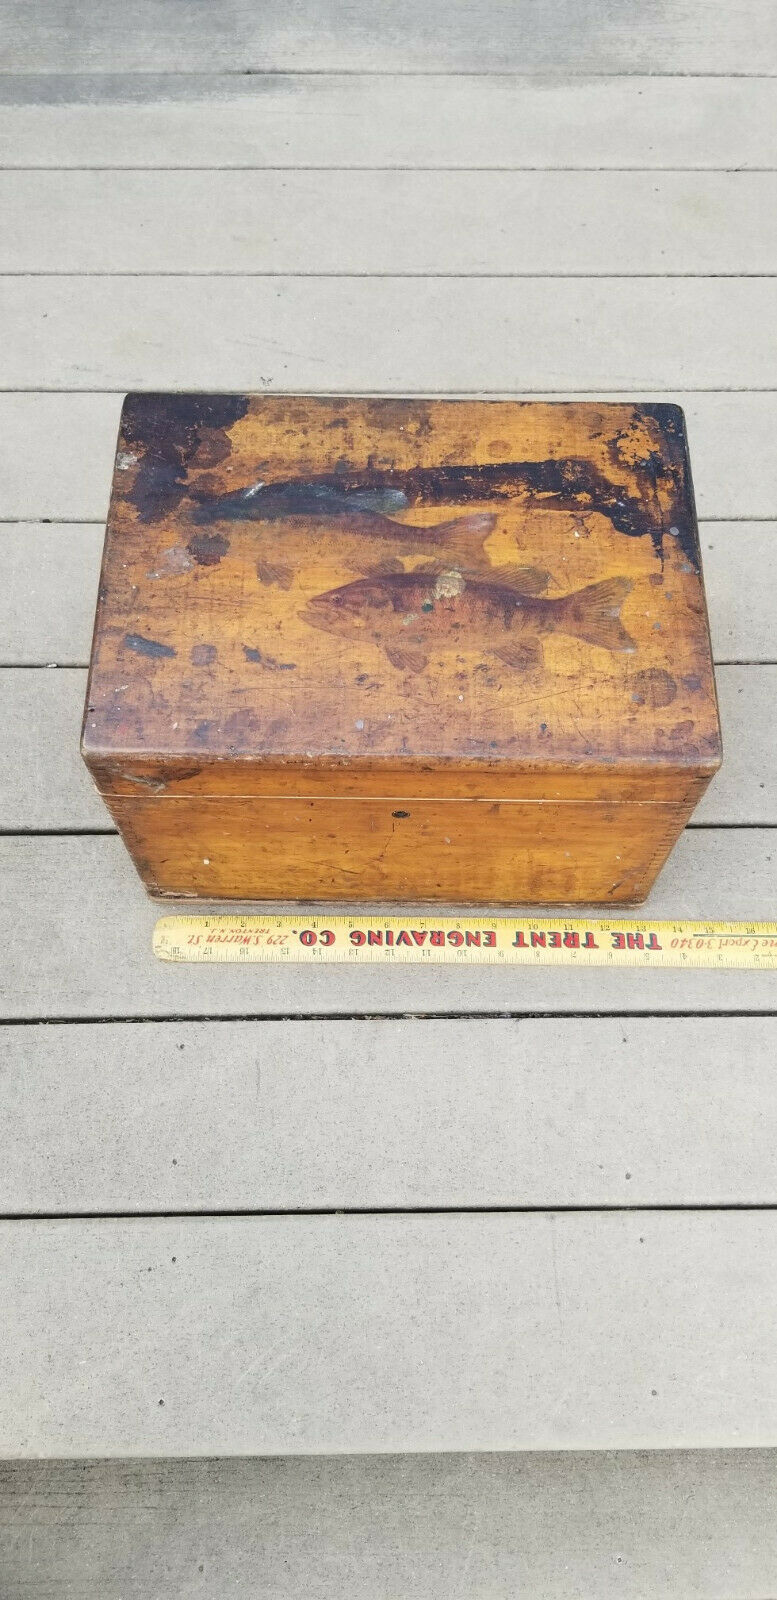 ONE OF A KIND VINTAGE DOVETAILED  LURE BOX  AWESOME LARGEMOUTH BASS ARTWORK  factory direct and quick delivery